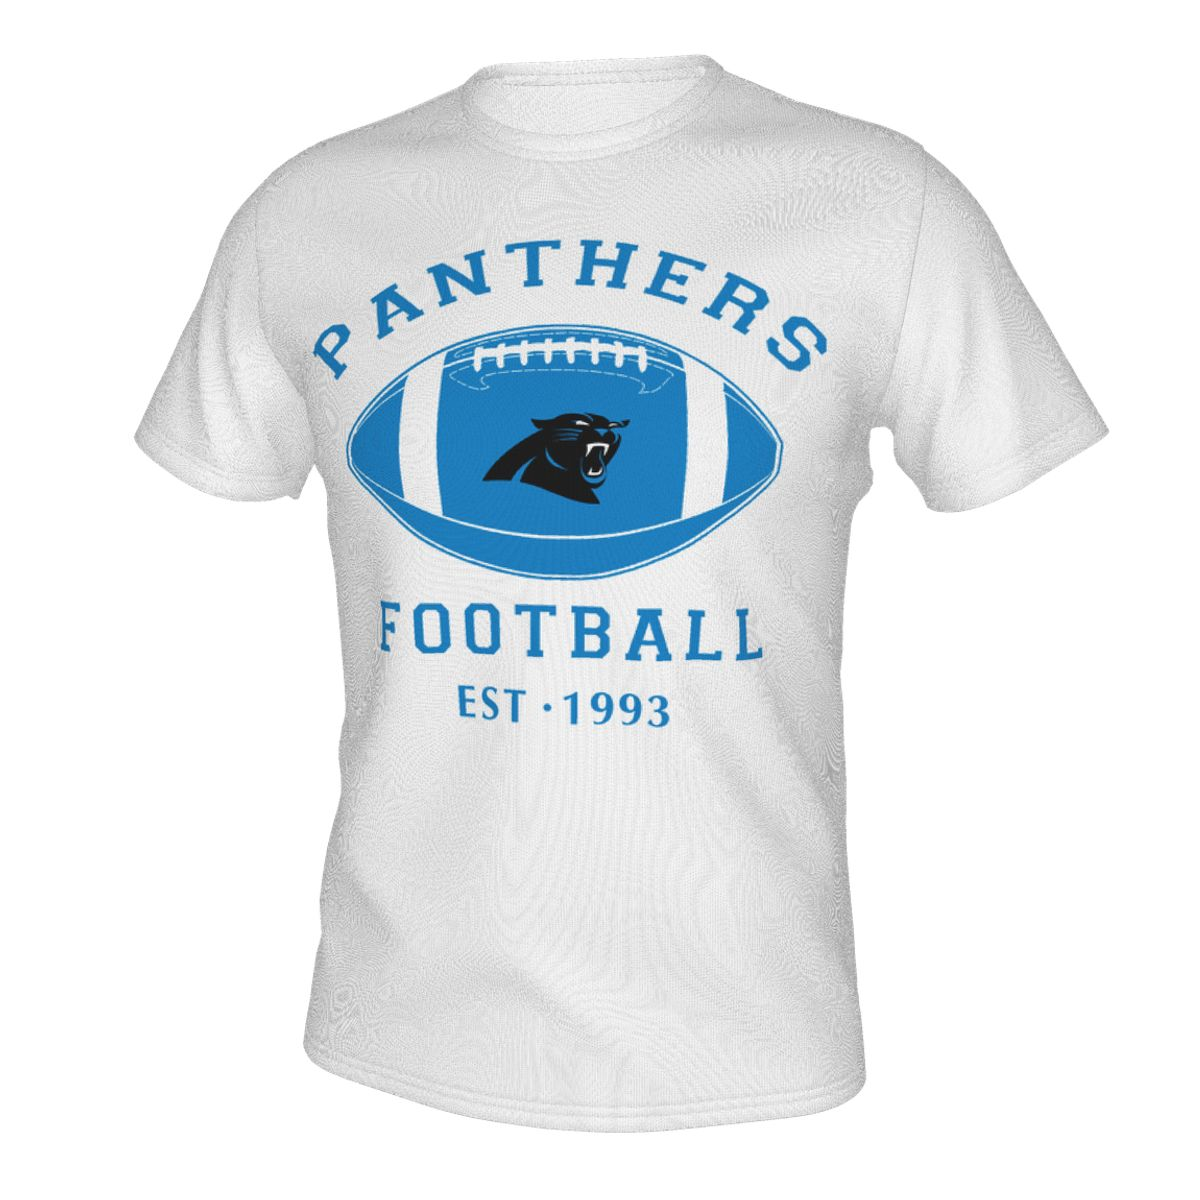 Footabll Panthers T-shirts For Men